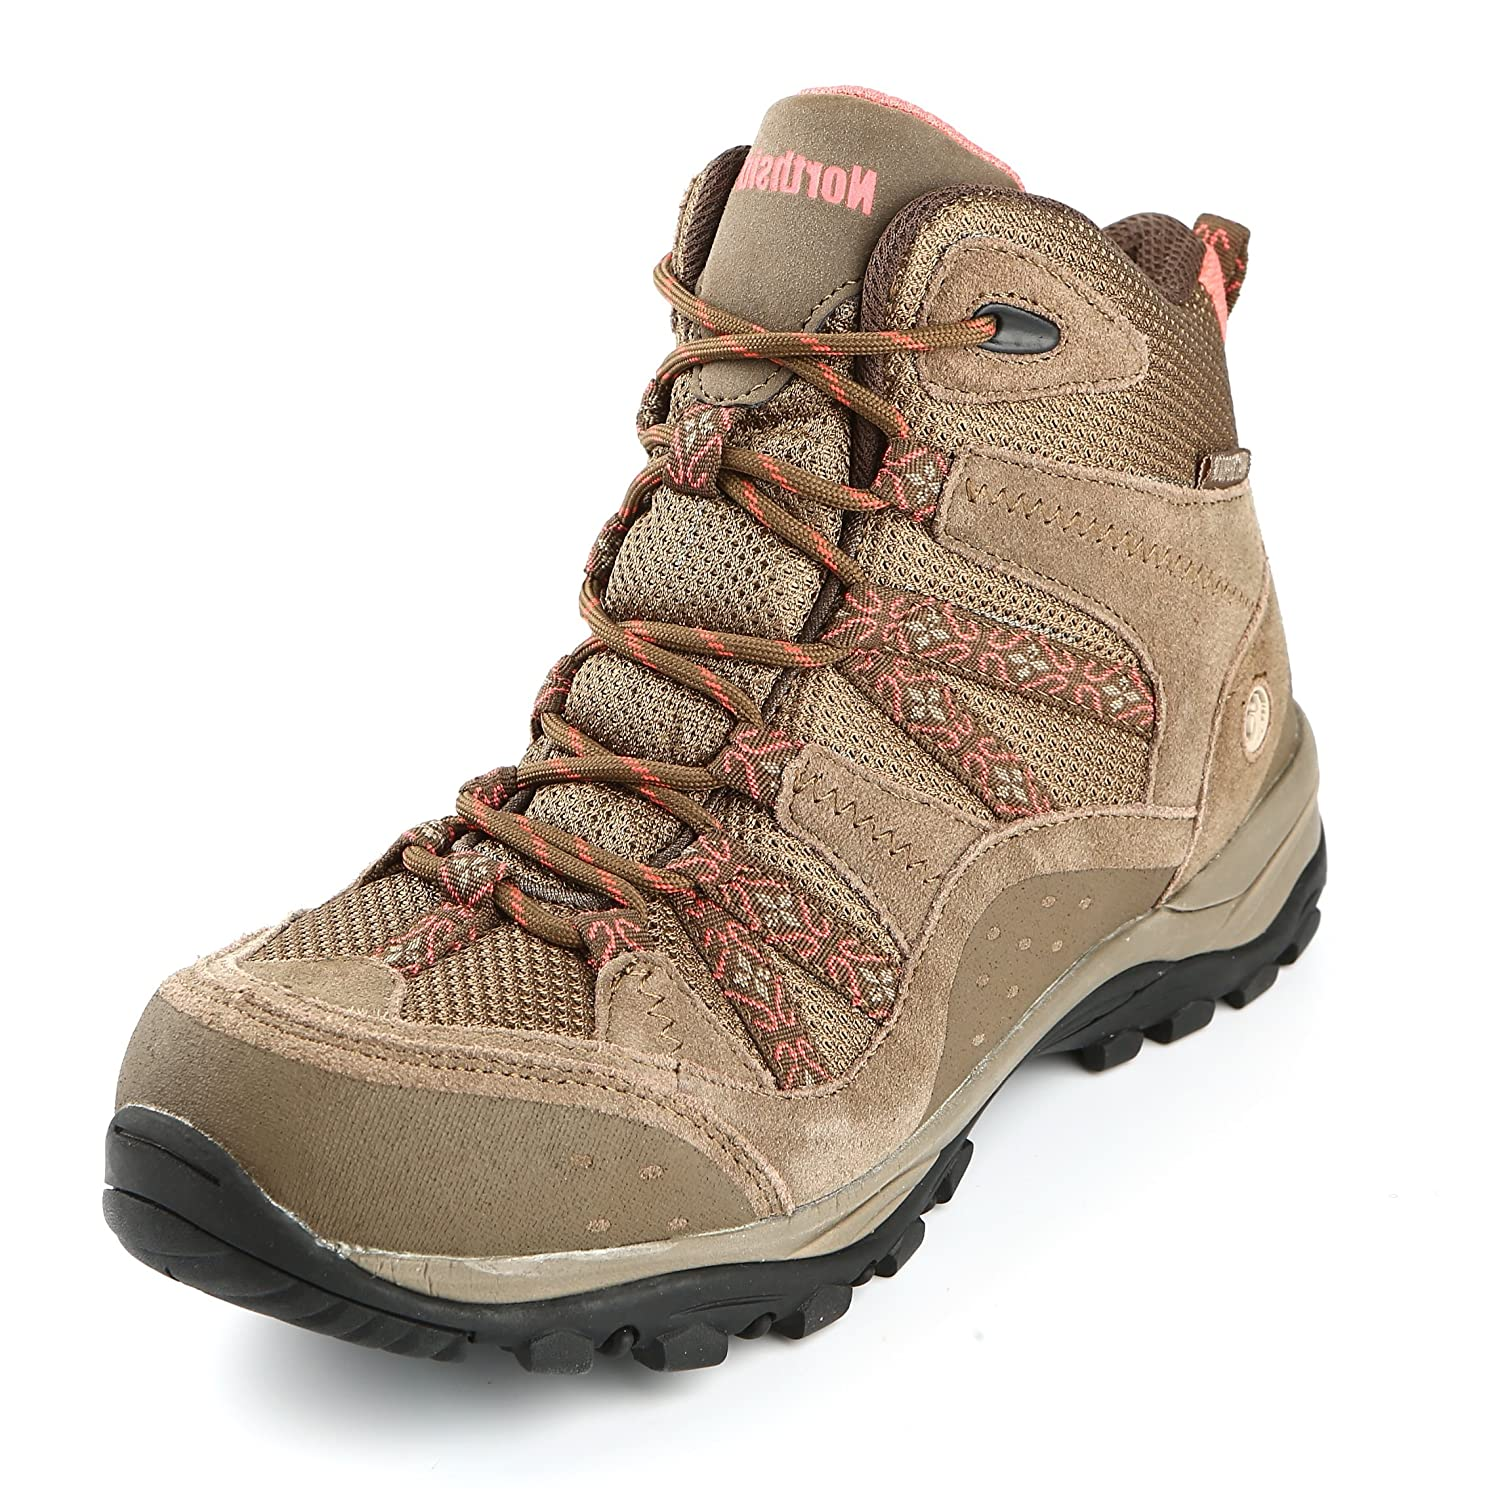 Northside Womens Freemont Leather Mid Waterproof Hiking Boot B074WH3193 7.5 B(M) US|Tan/Coral